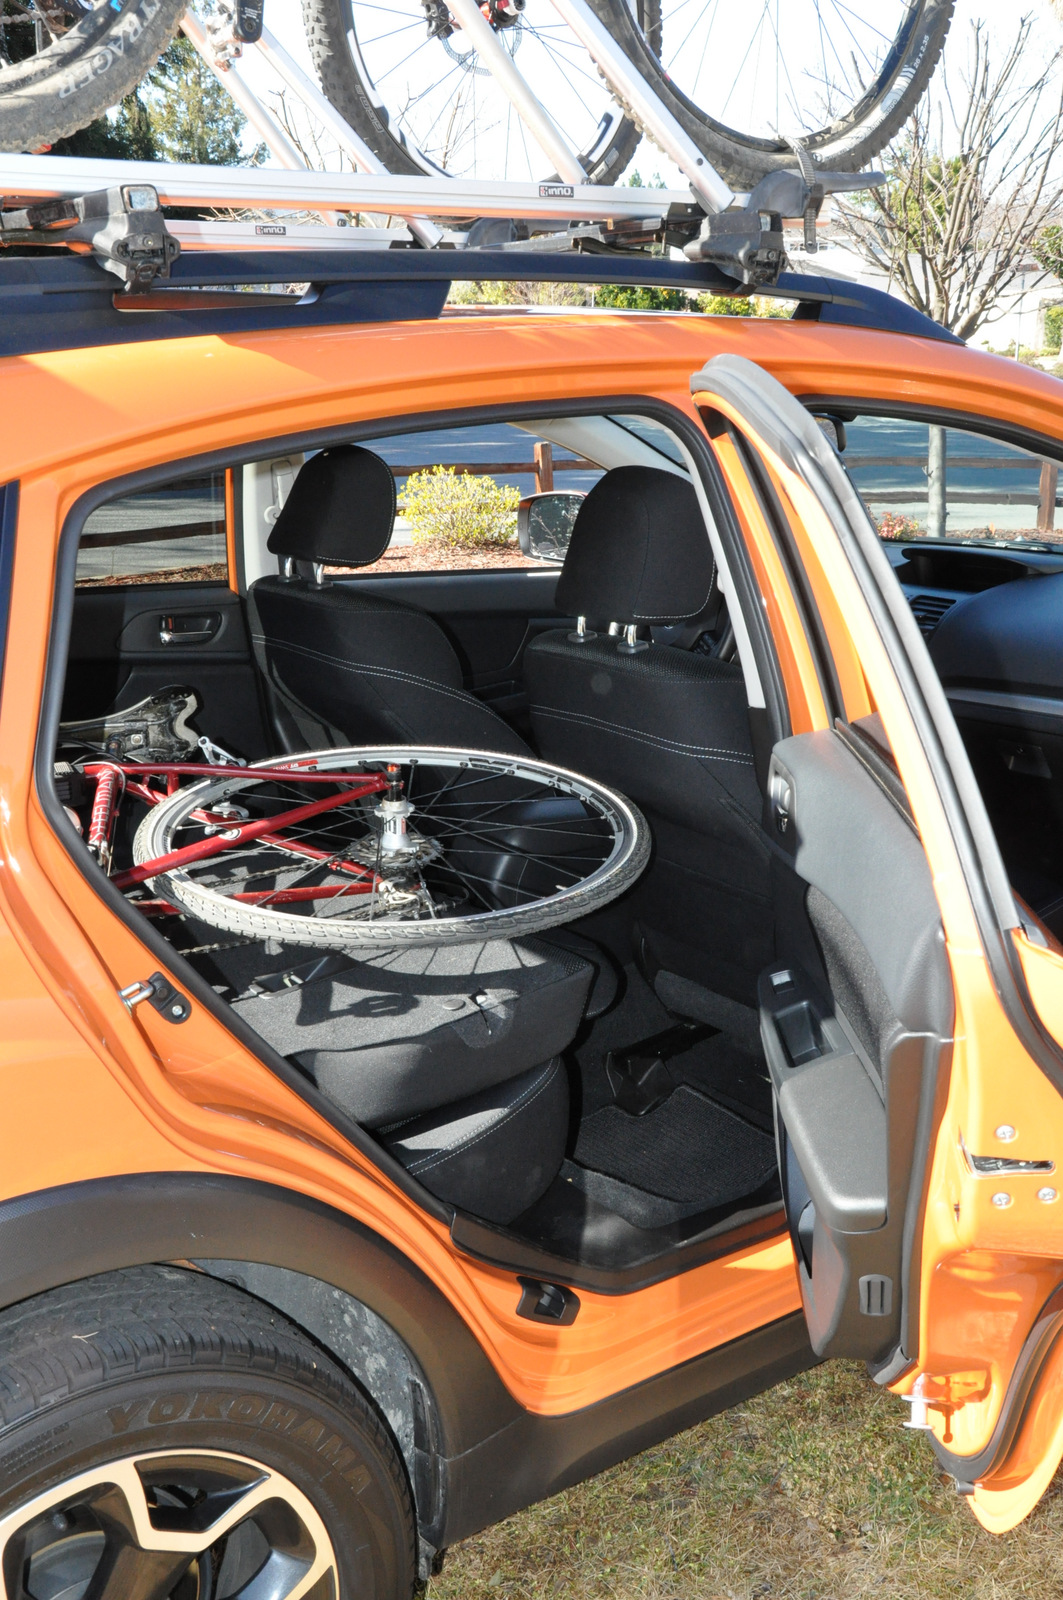 Subaru XV Crosstrek with bike on rear